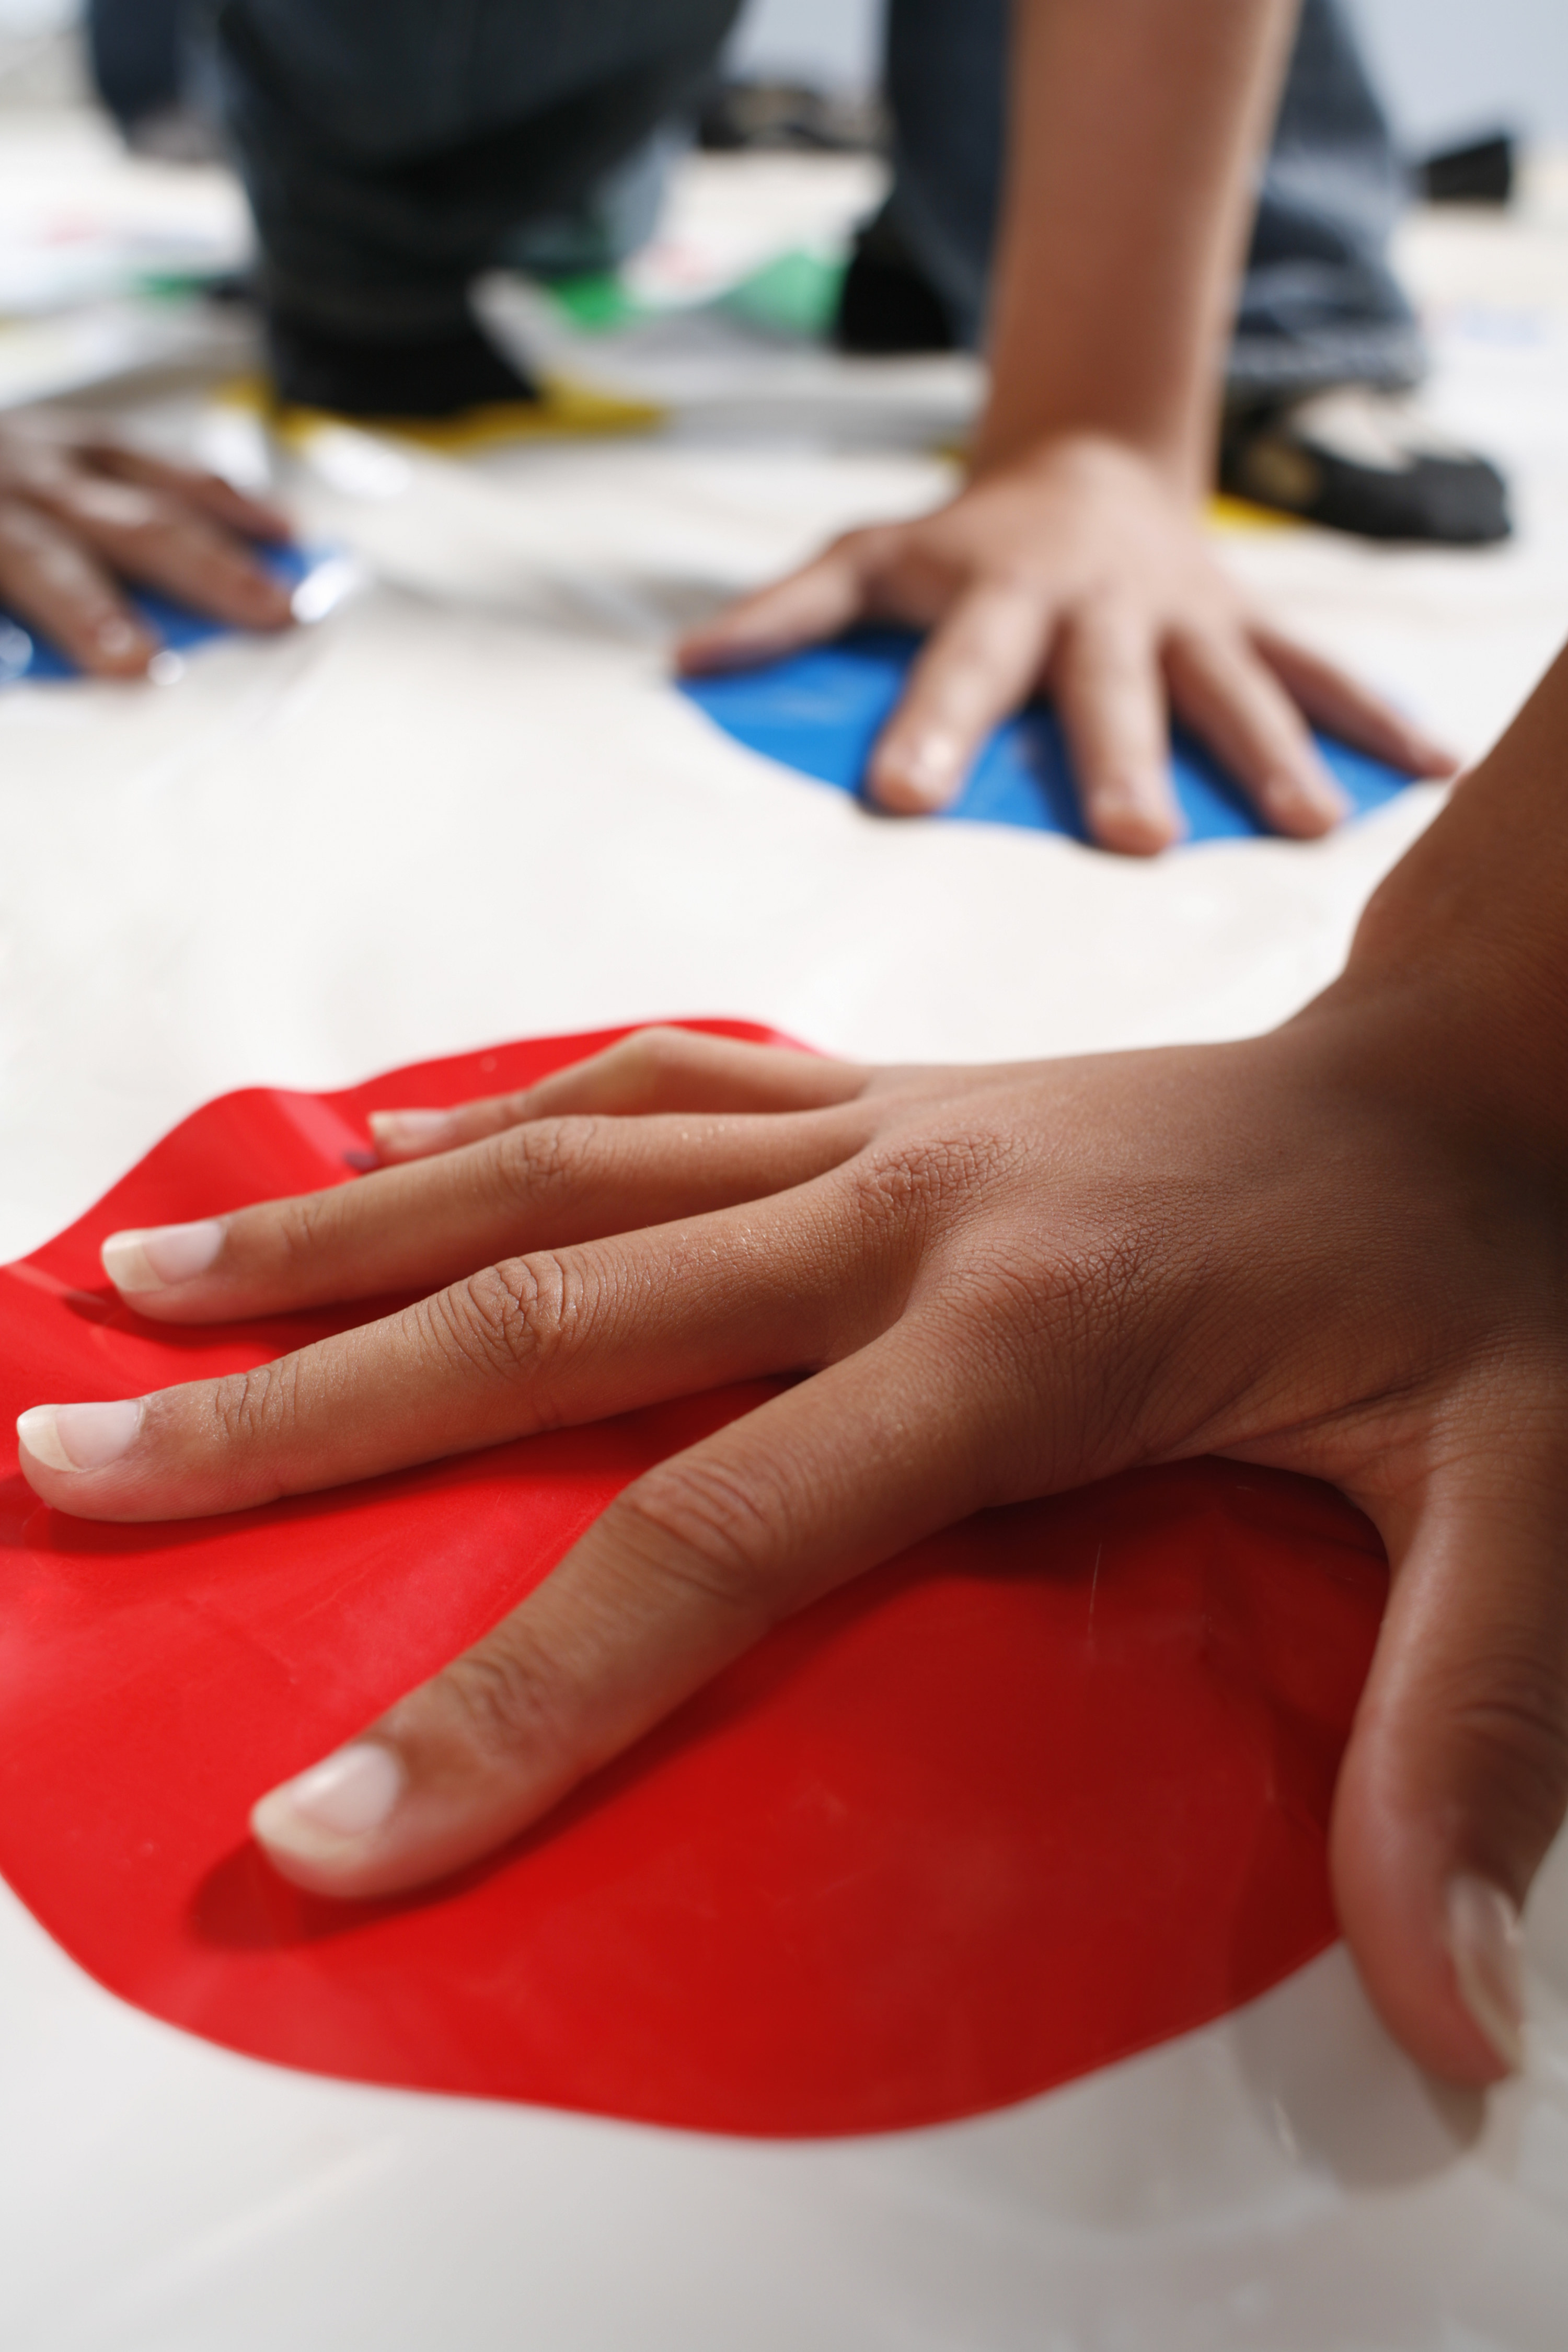 Hands being placed on various circles of color on a Twister game mat.